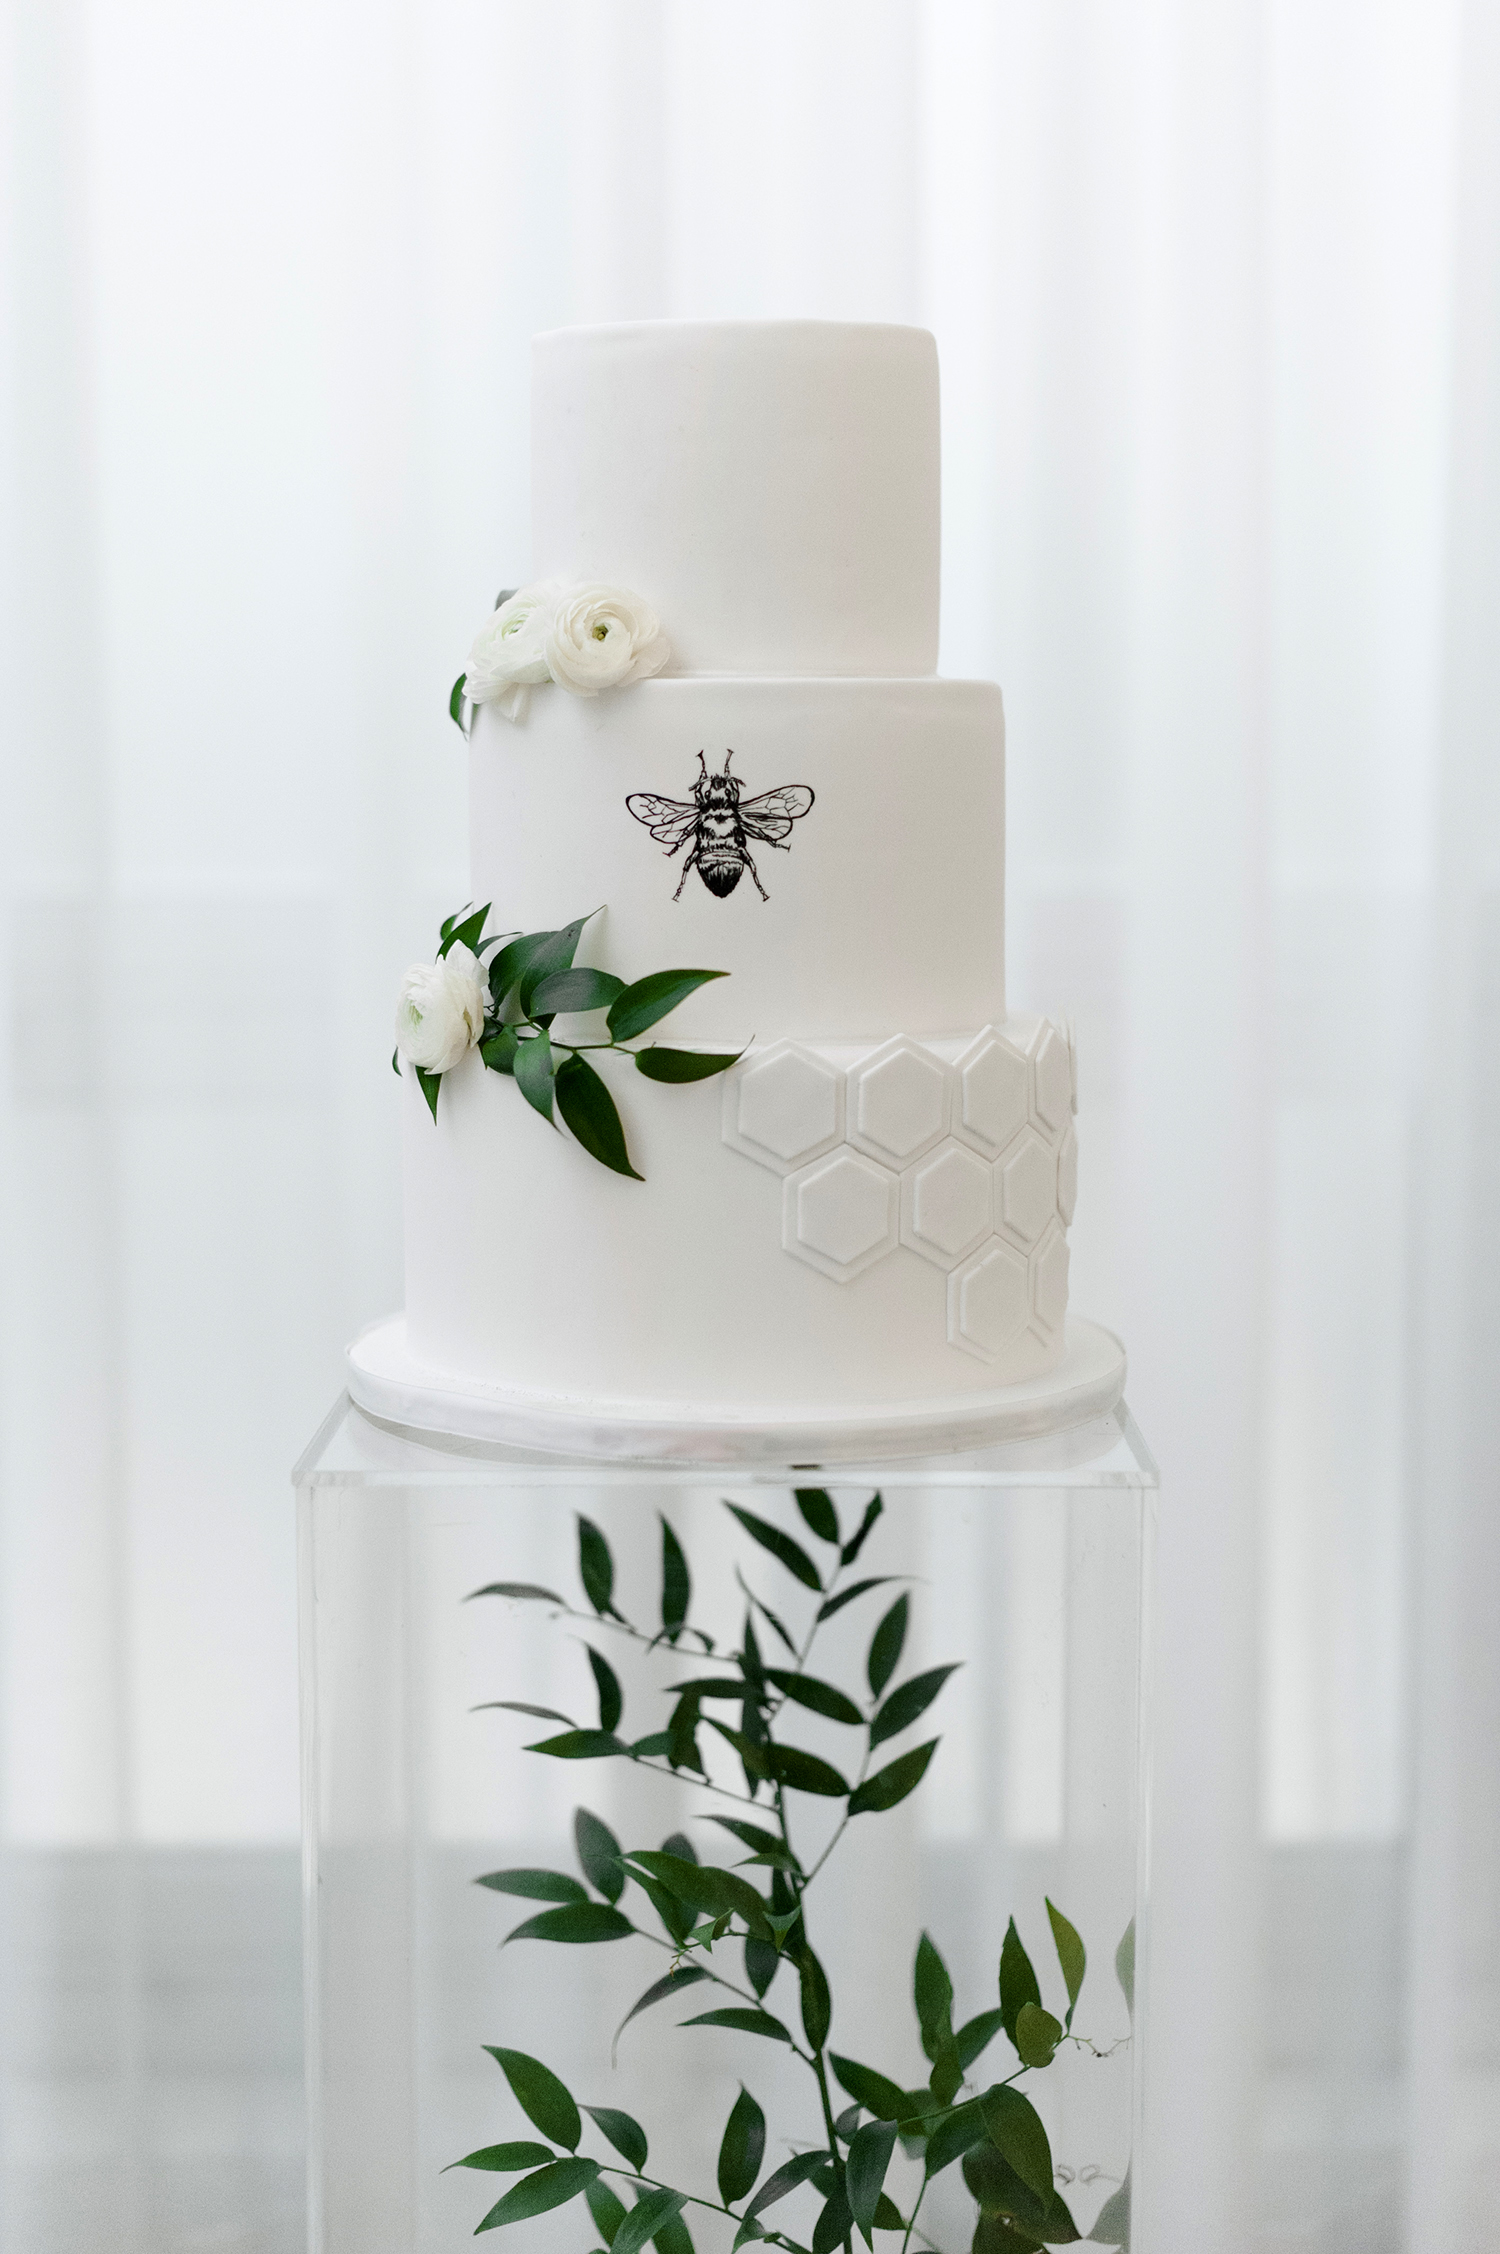 bee wedding ideas cake on tall stand with greenery design